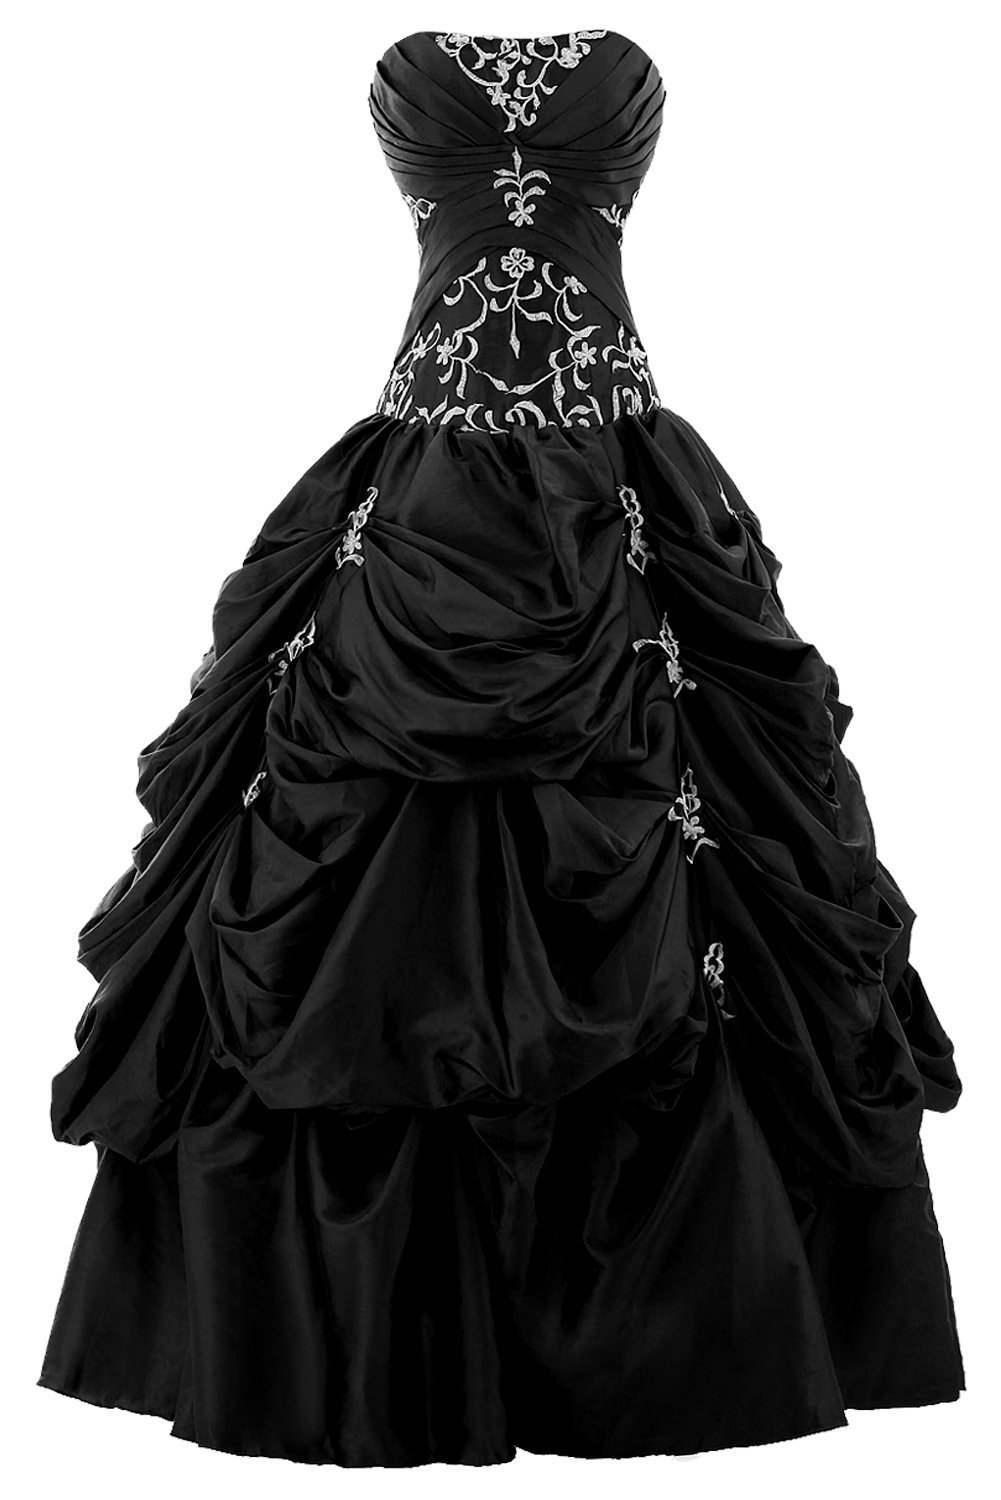 Snowskite Women's Strapless Taffeta Applique Pick-up Quinceanera Dress Black 0